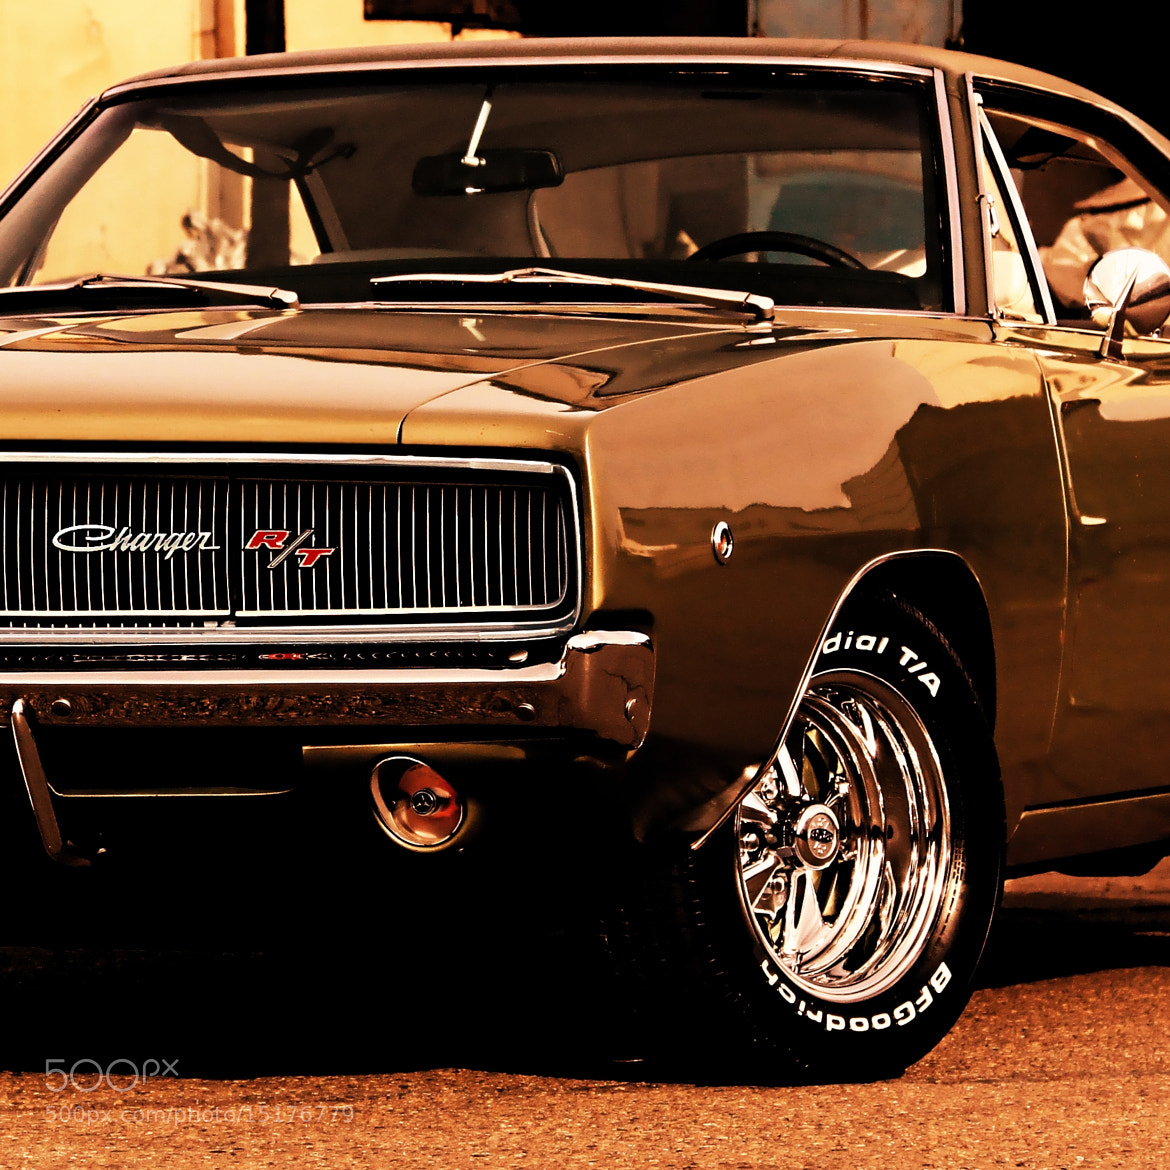 Photograph 1968 Dodge Charger R/T Avatar - Precious Metal by Scott Crawford on 500px